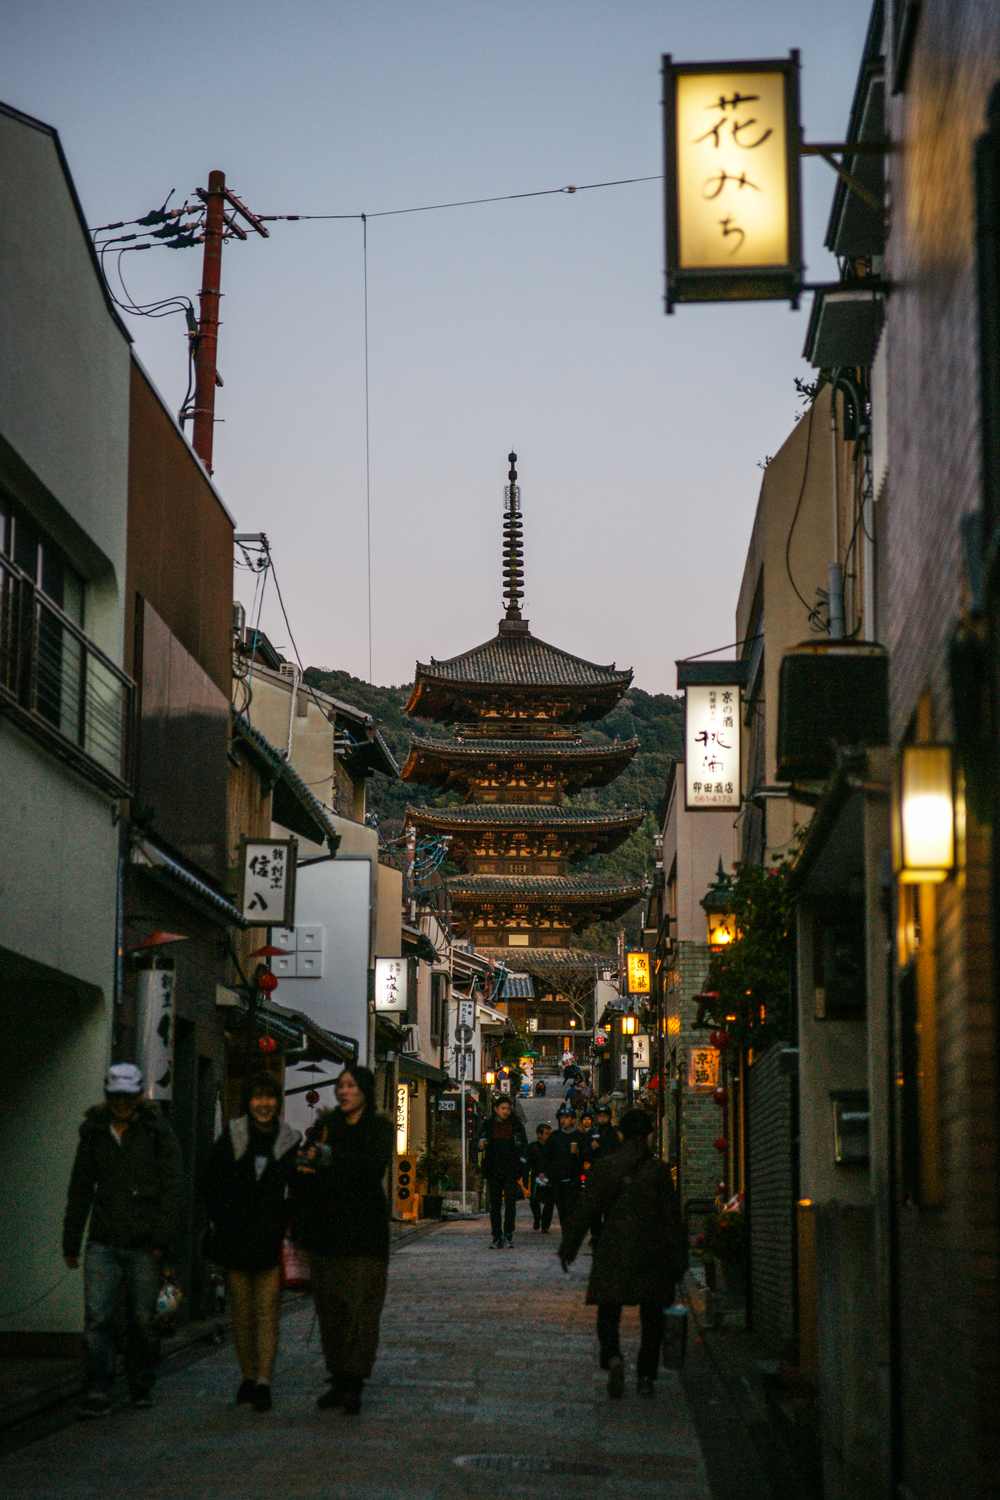 Small street in Kyoto and Pagoda